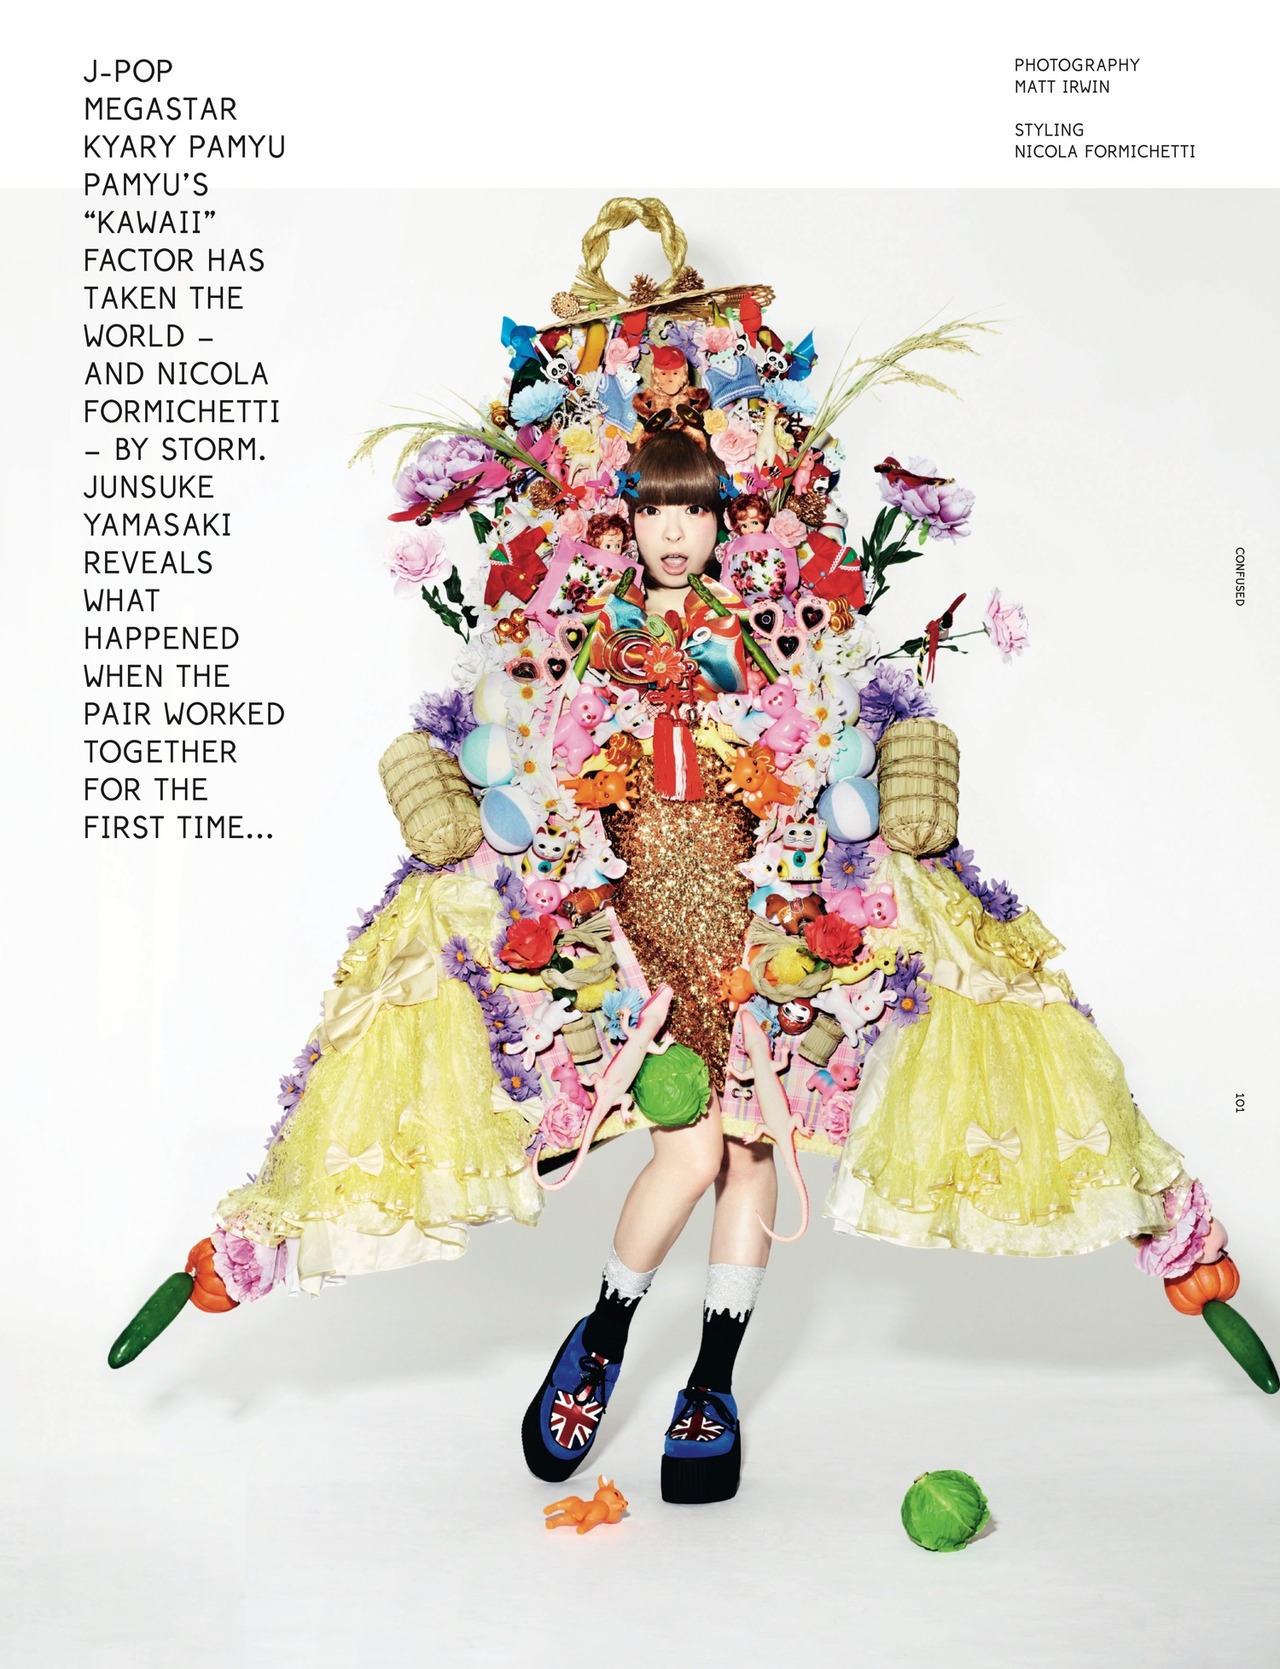 Kyary Pamyu Pamyu wearing Creepers Underground blog - Which bands and musicians wear Creepers?